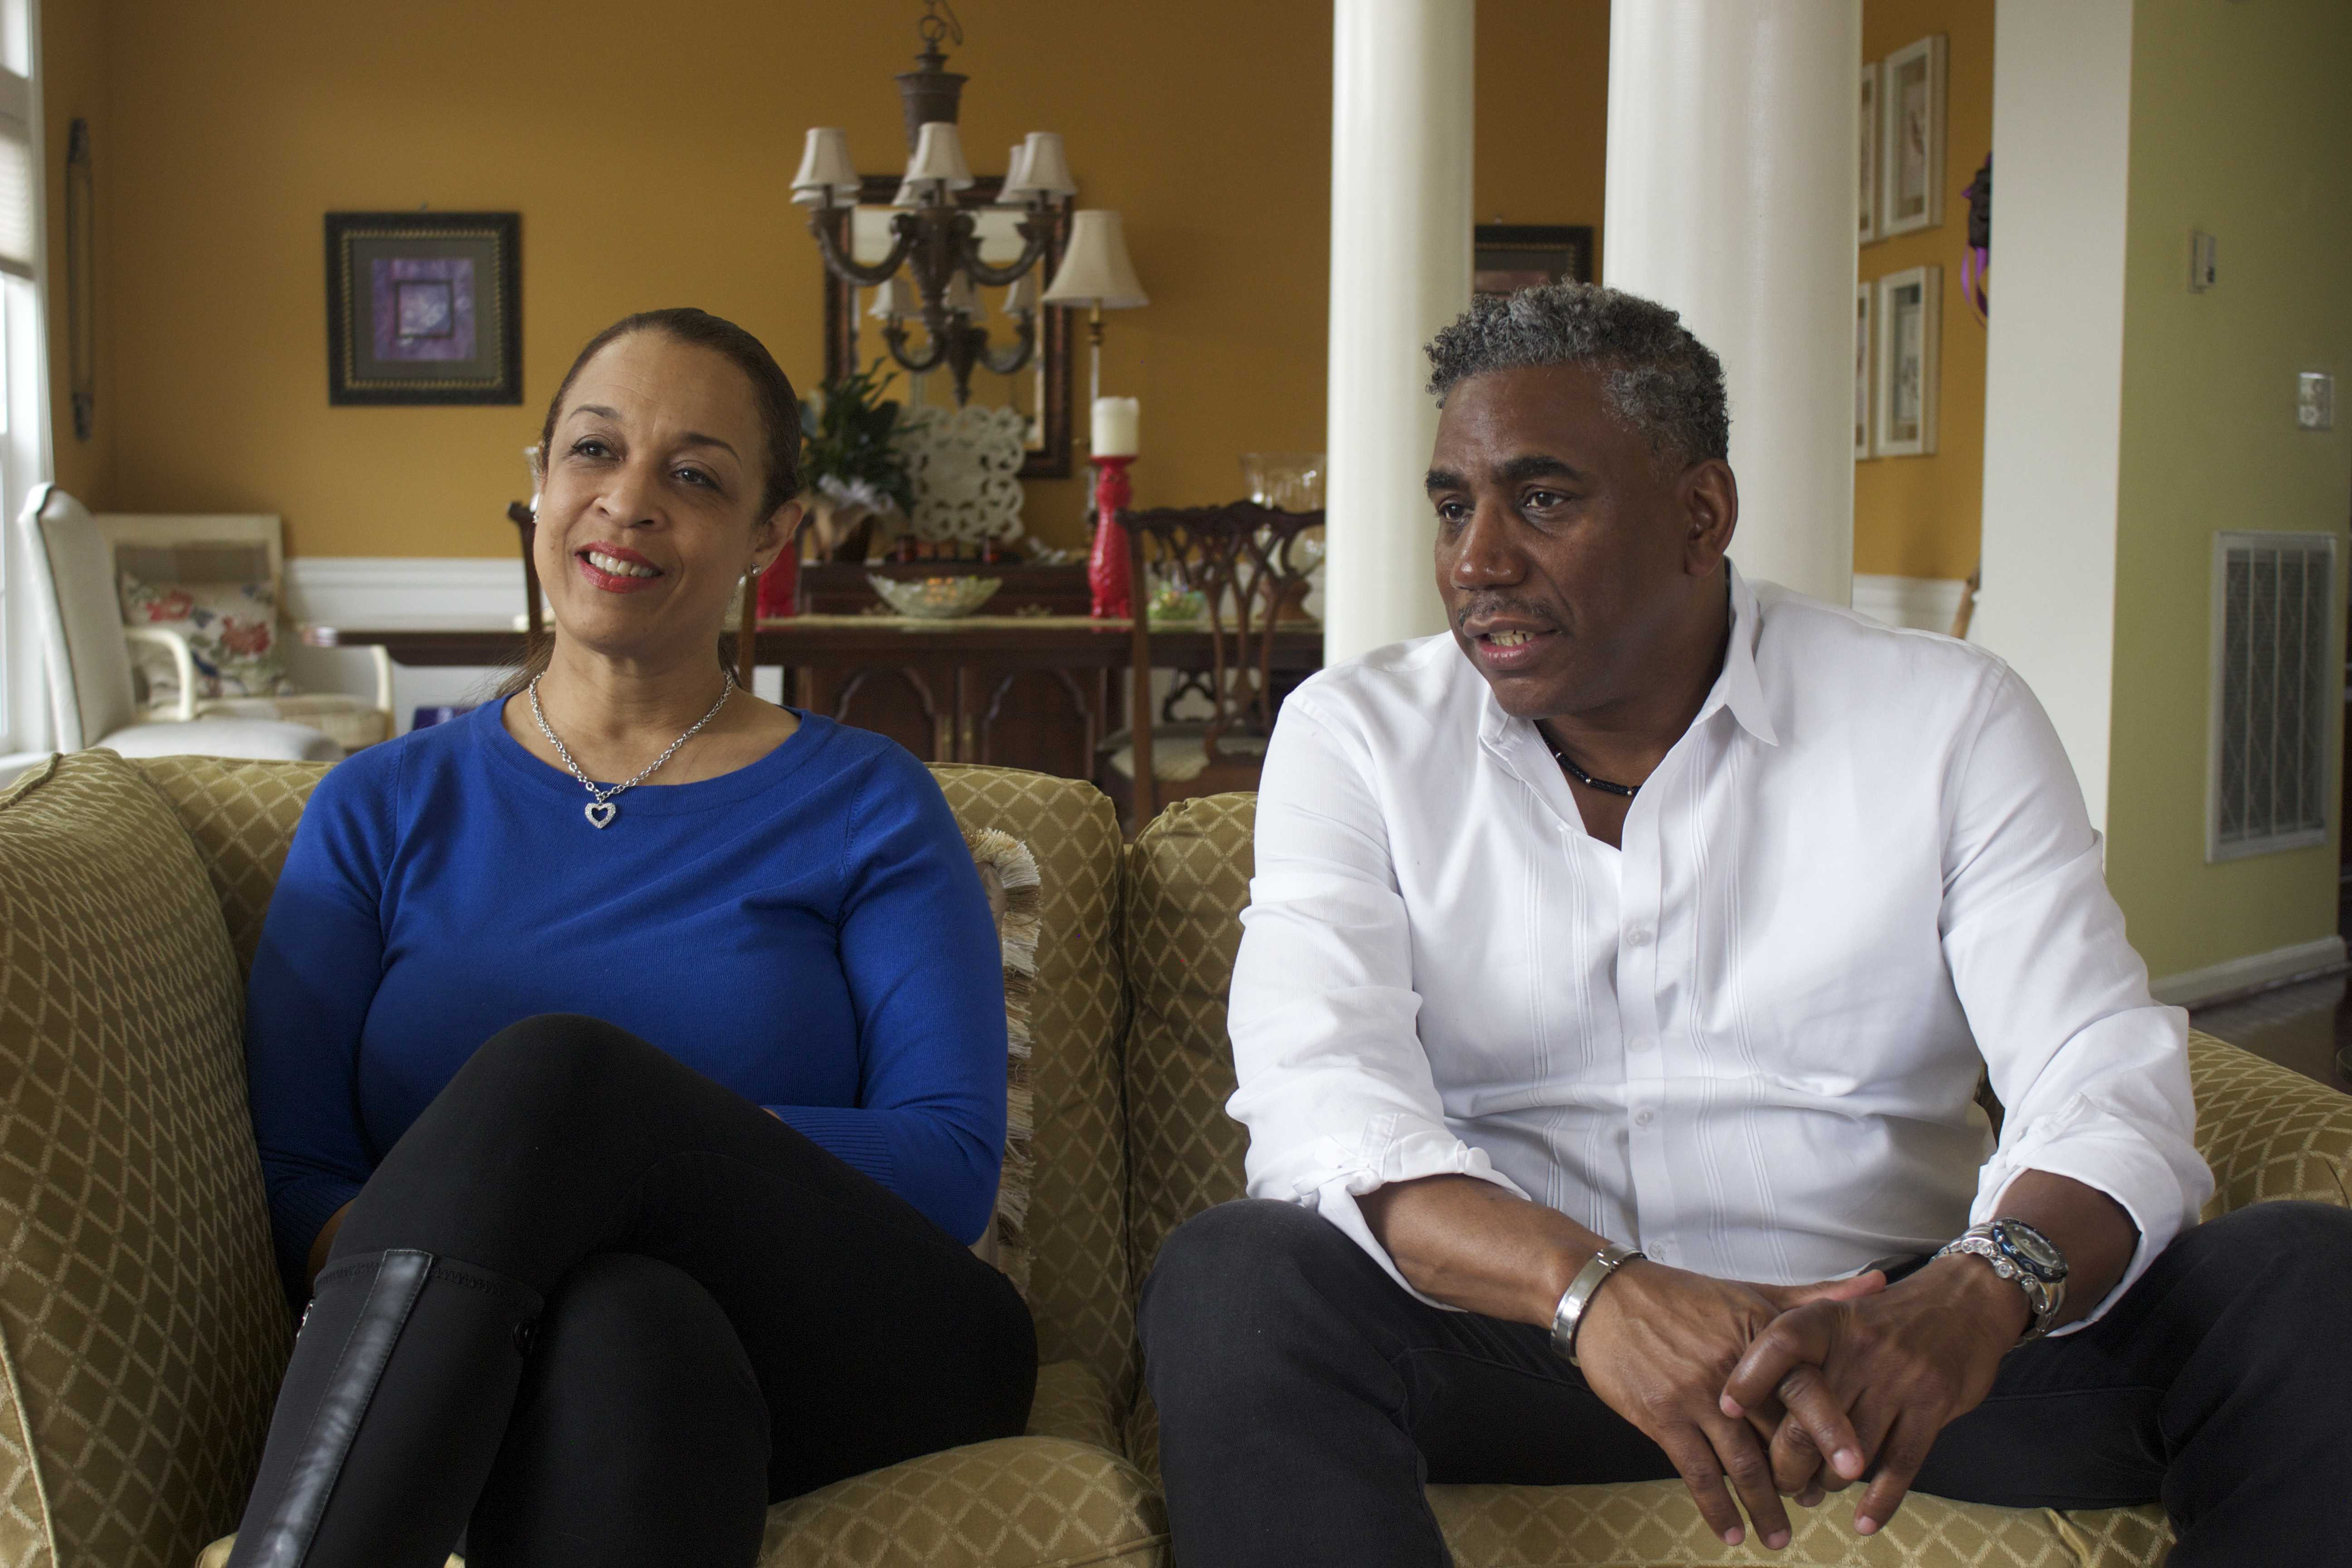 (Left) Joneé Brown, mother of Williams and (Right) Gerald Williams, Sr., father of Williams